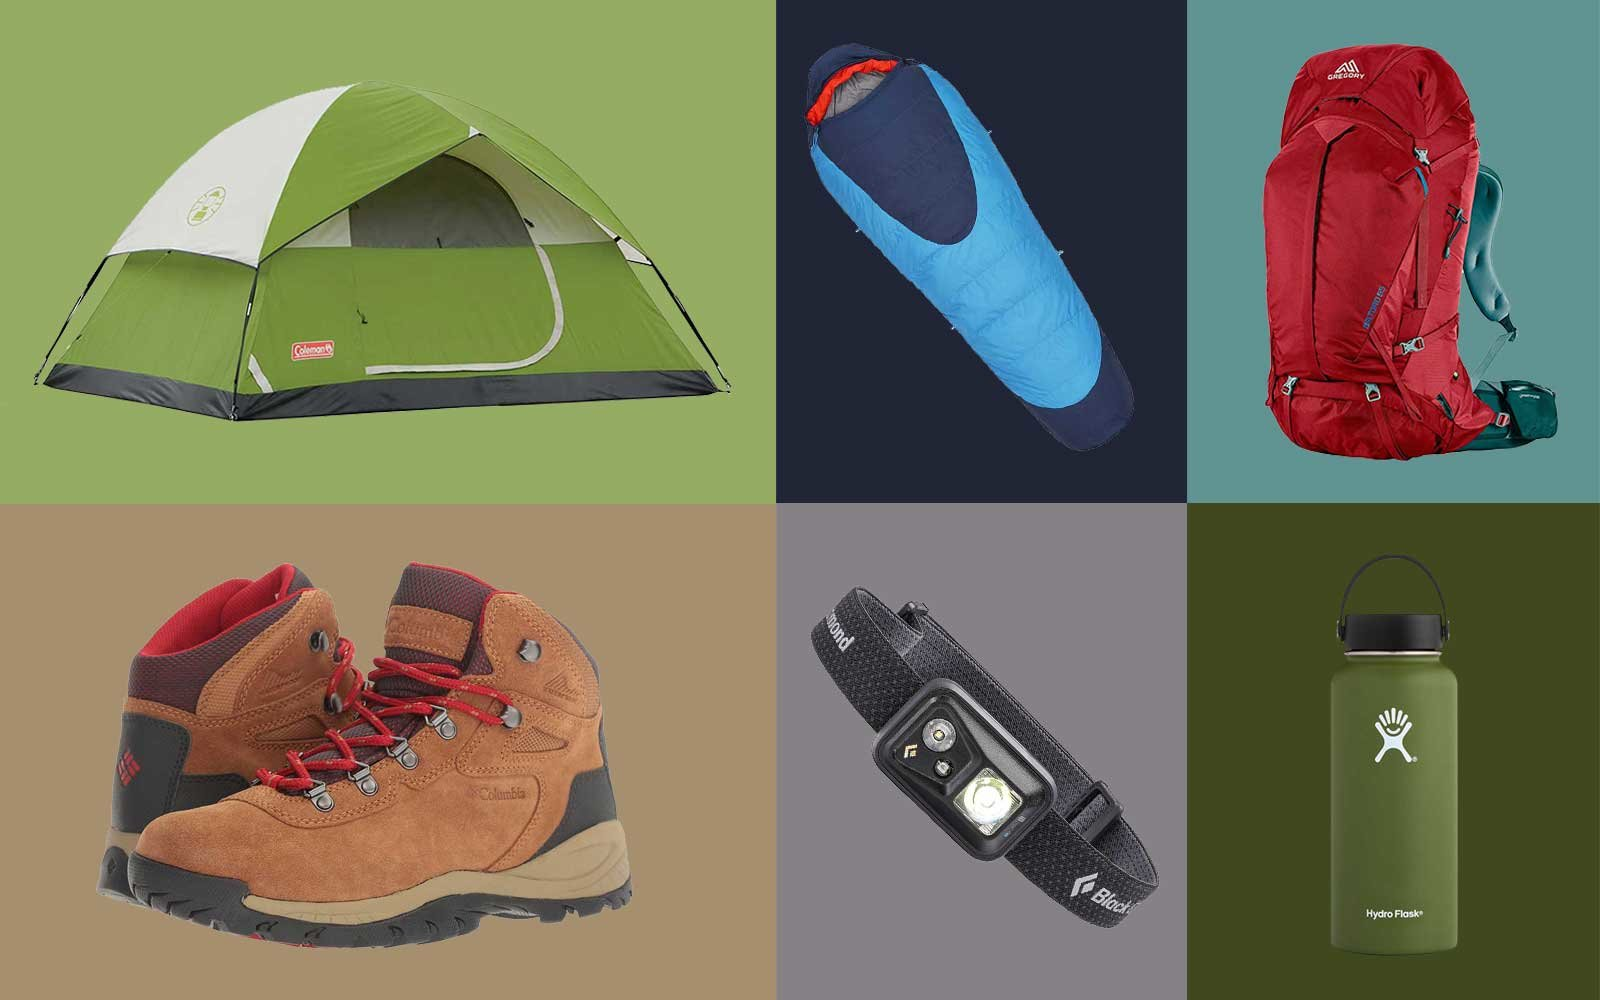 camping-hiking-gear-on-amazon-CAMPAZON0418.jpg